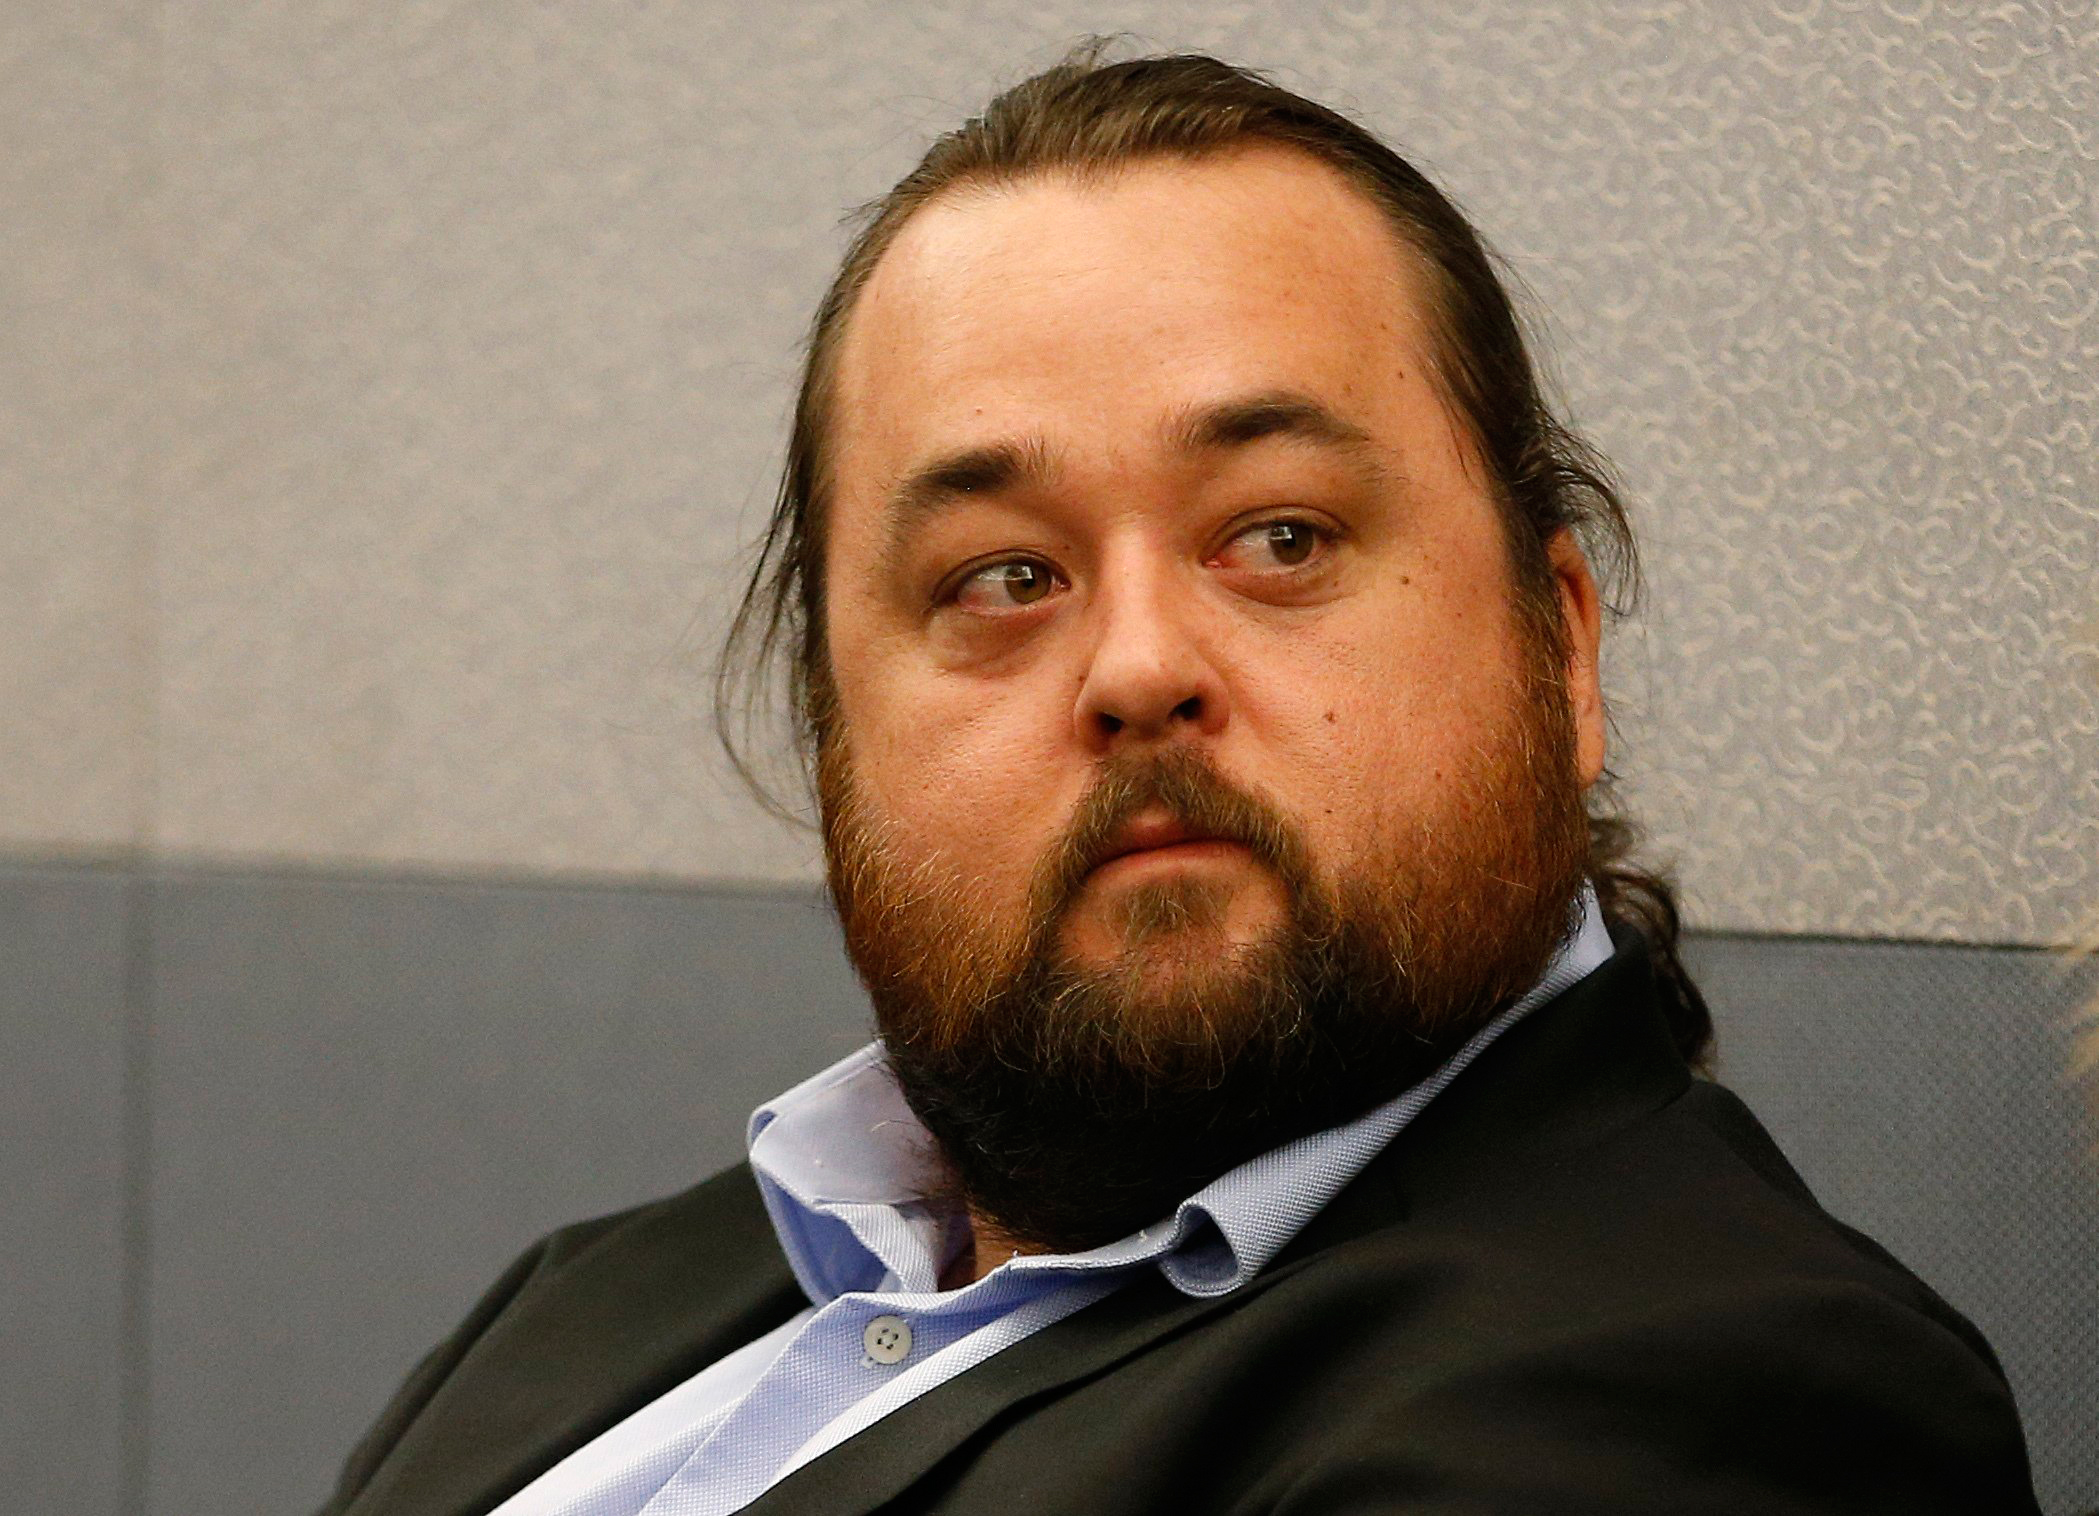 Austin Lee Russell, better known as Chumlee from the TV series  Pawn Stars,  appears in court in Las Vegas on May 23, 2016.